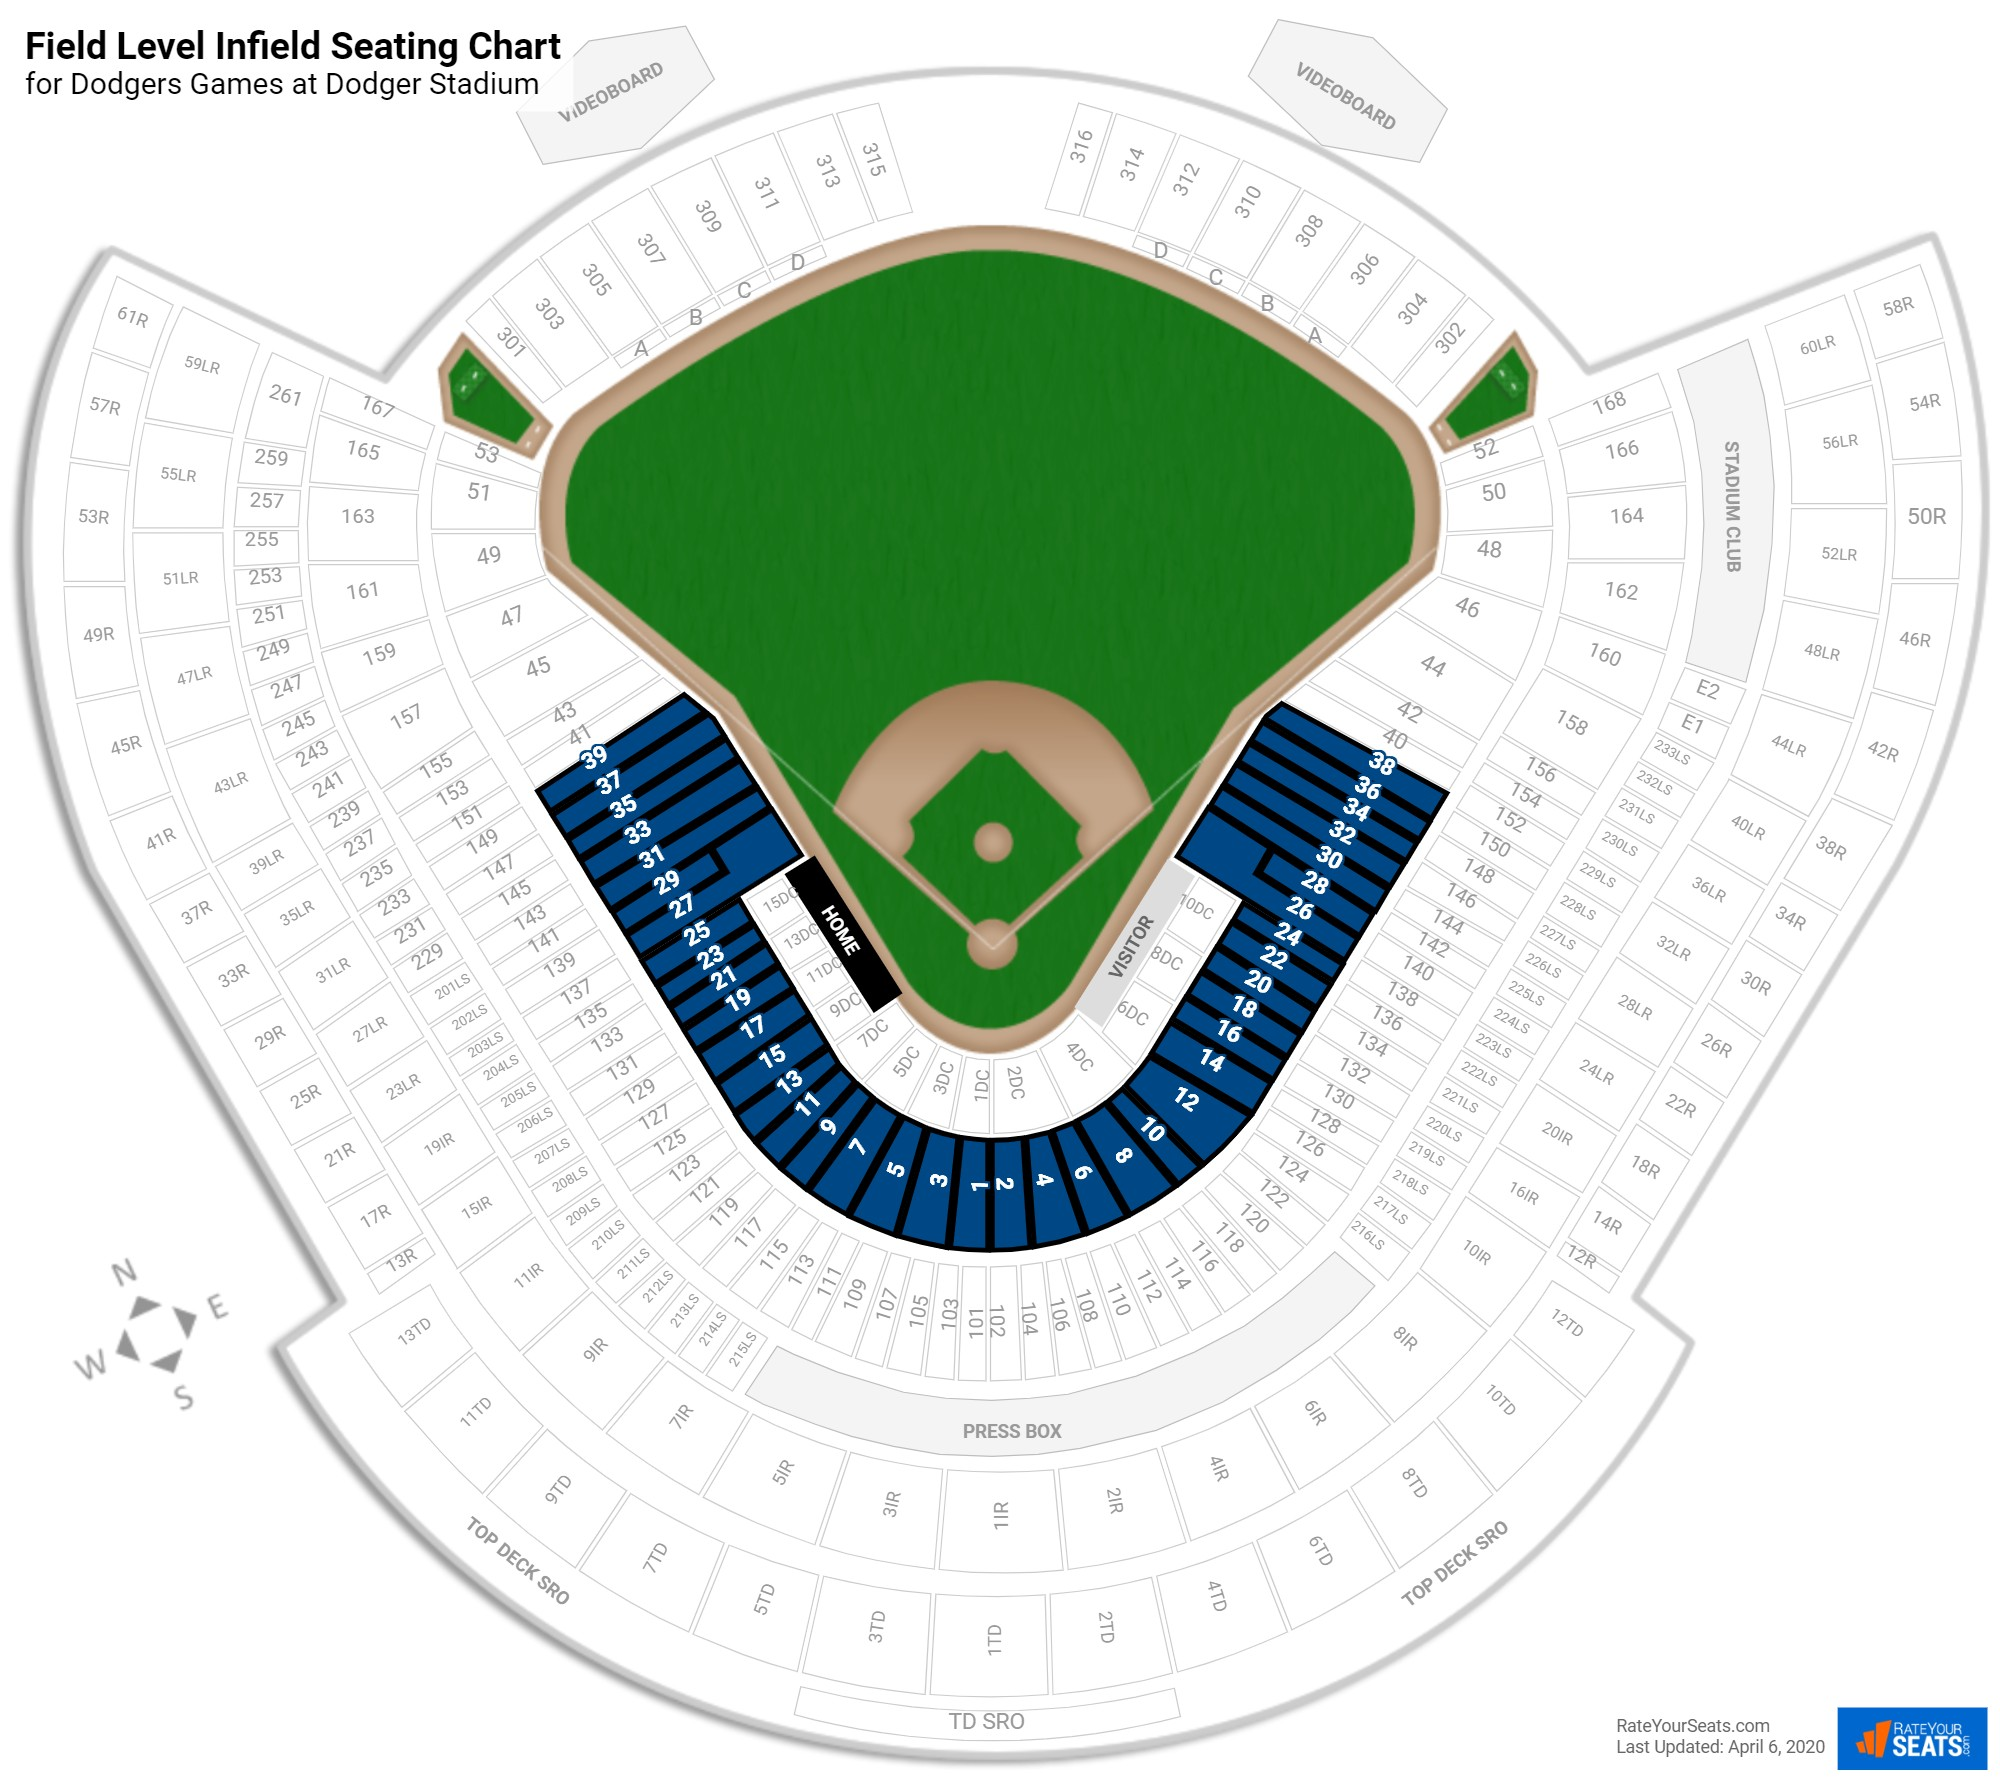 Dodger Stadium Field Level Infield seating chart